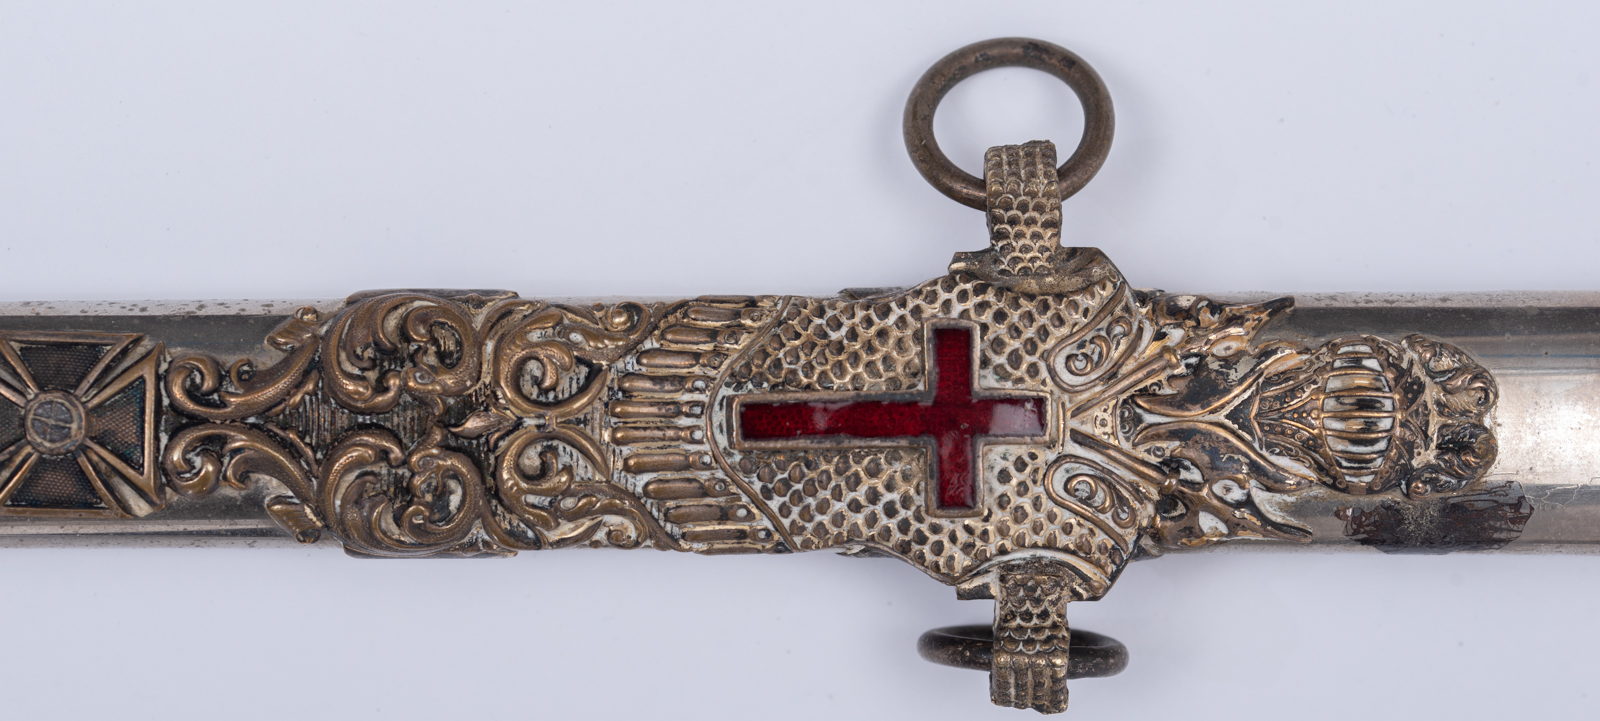 Lot 1234 - A very richly decorated silver-plated sabre of the order of Malta, the blade depicting various scene